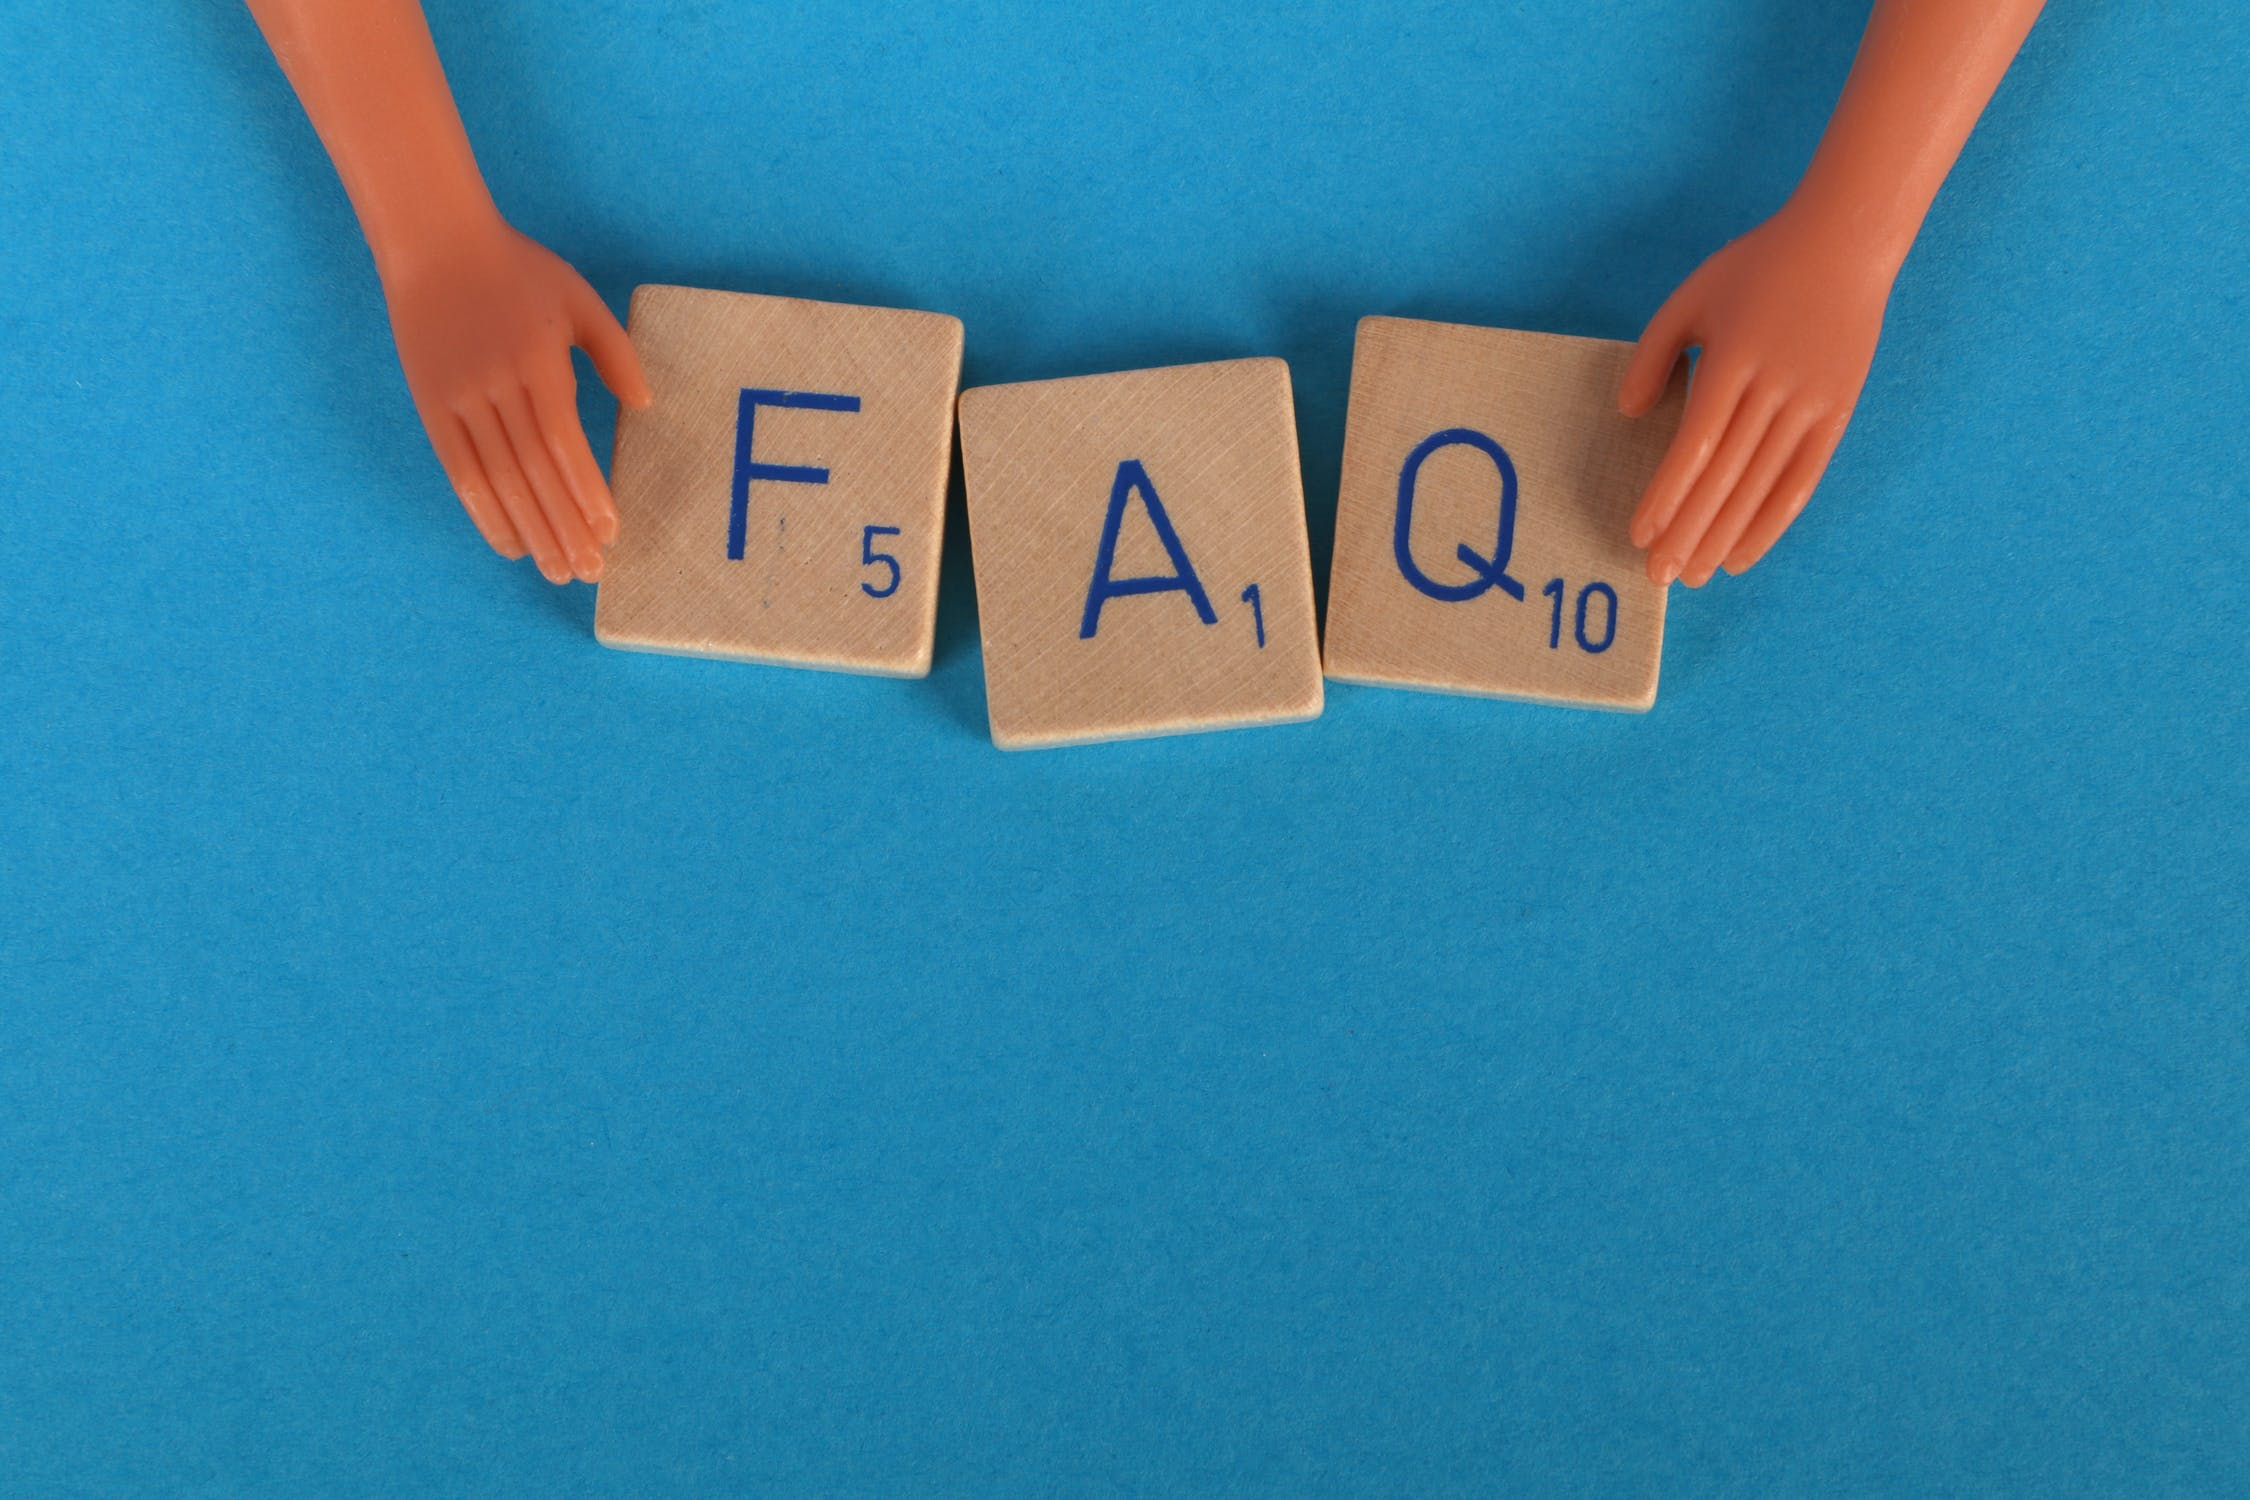 "Doll hands arrange scrabble letters into order reading ""FAQ"" on a light blue background. Photo used courtesy of Pexels.com."